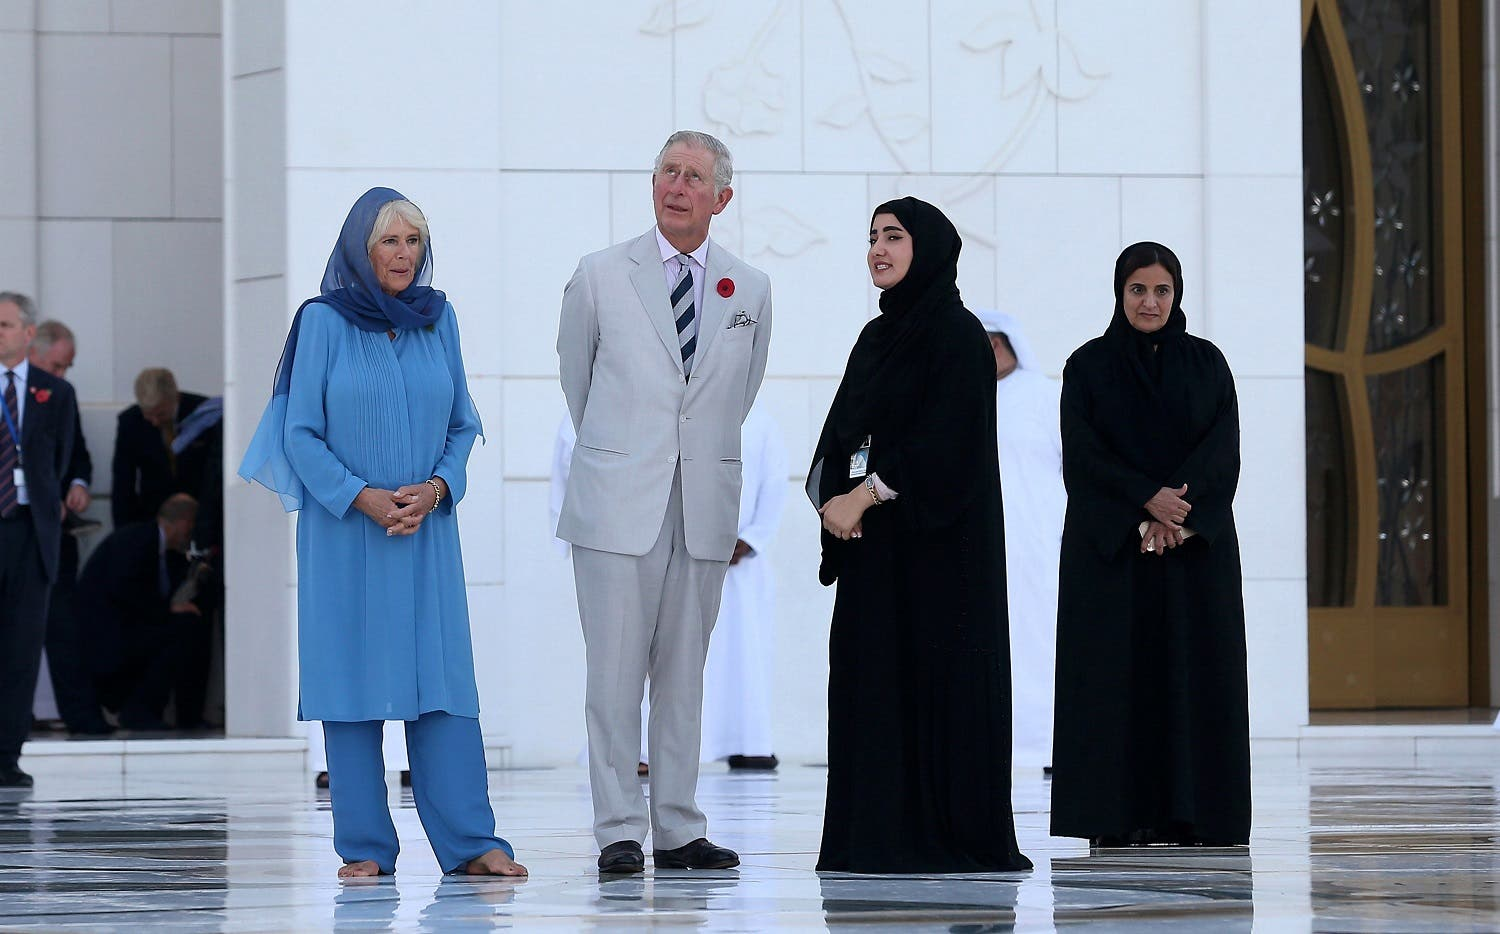 Britain's Prince Charles (2nd L) and his wife Camilla (L), Duchess of Cornwall, tour the Sheikh Zayed Grand Mosque in Abu Dhabi, United Arab Emirates. (Reuters)